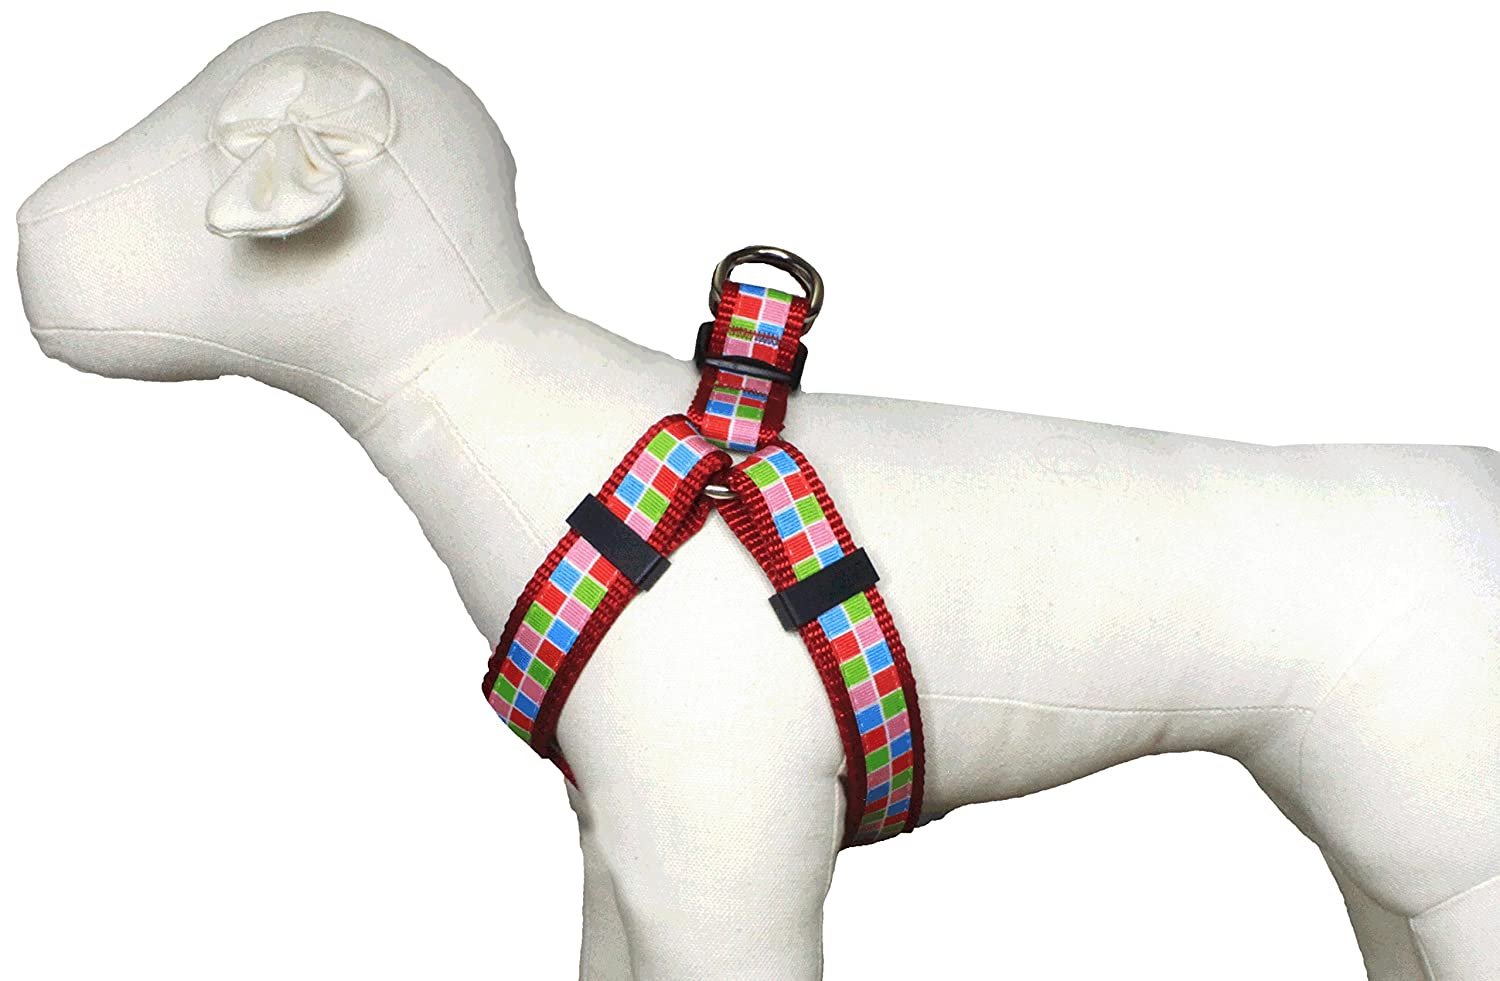 Large Harness Paw Paws USA Pupcake Block Dog Harness, Large, Multicolord